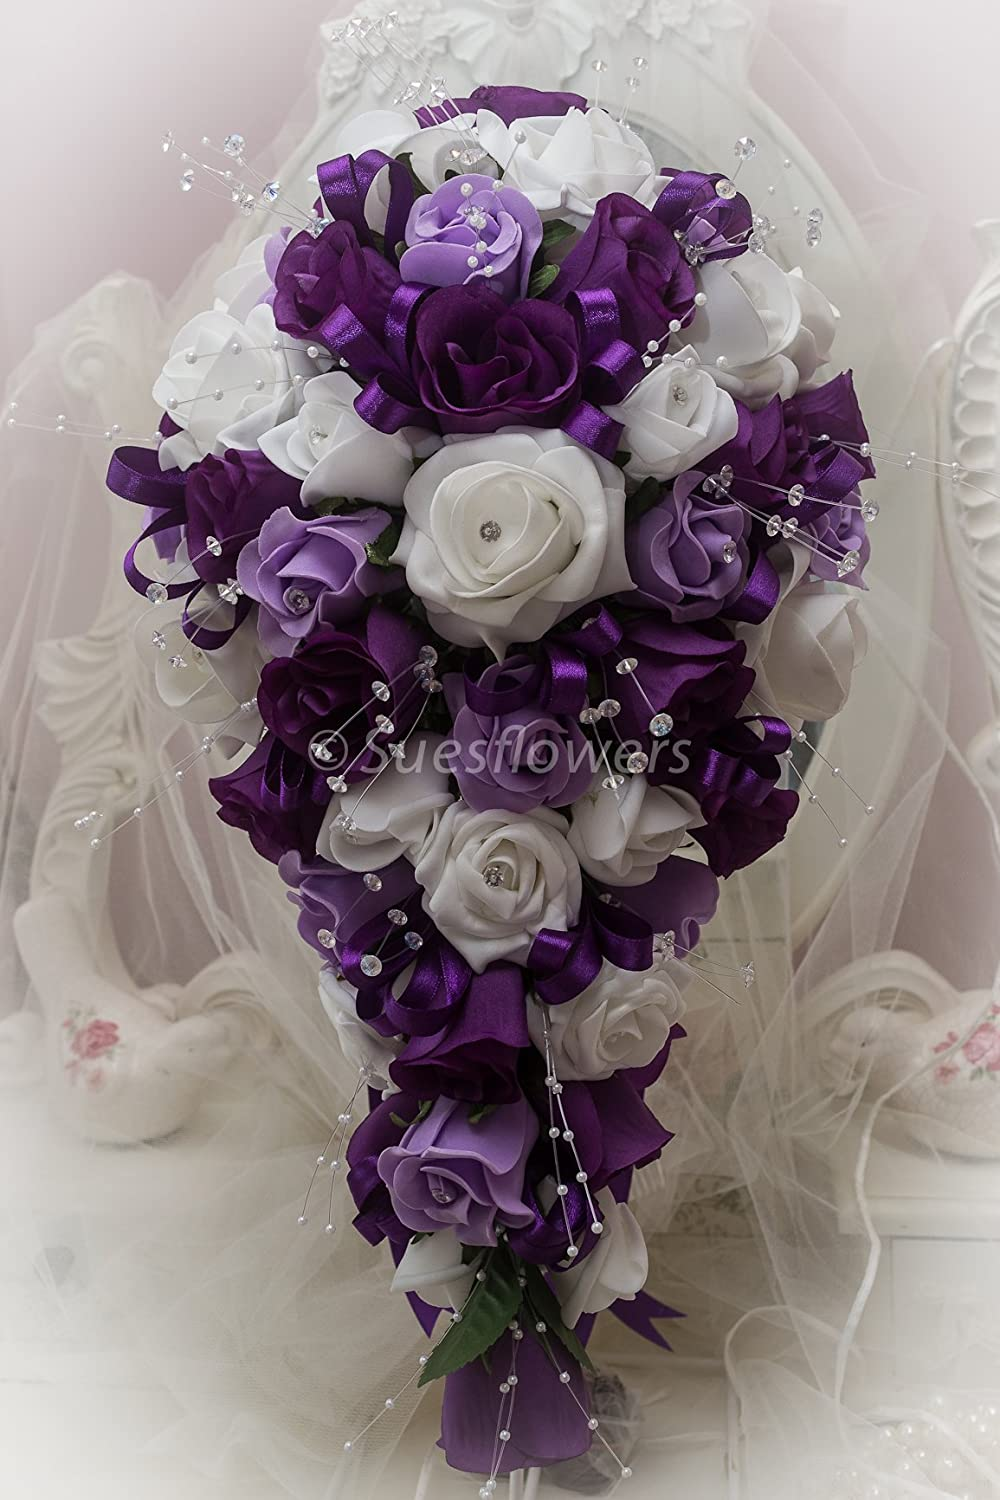 WEDDING FLOWERS BRIDES TEARDROP PURPLE LILAC AND WHITE sues Flowers of York